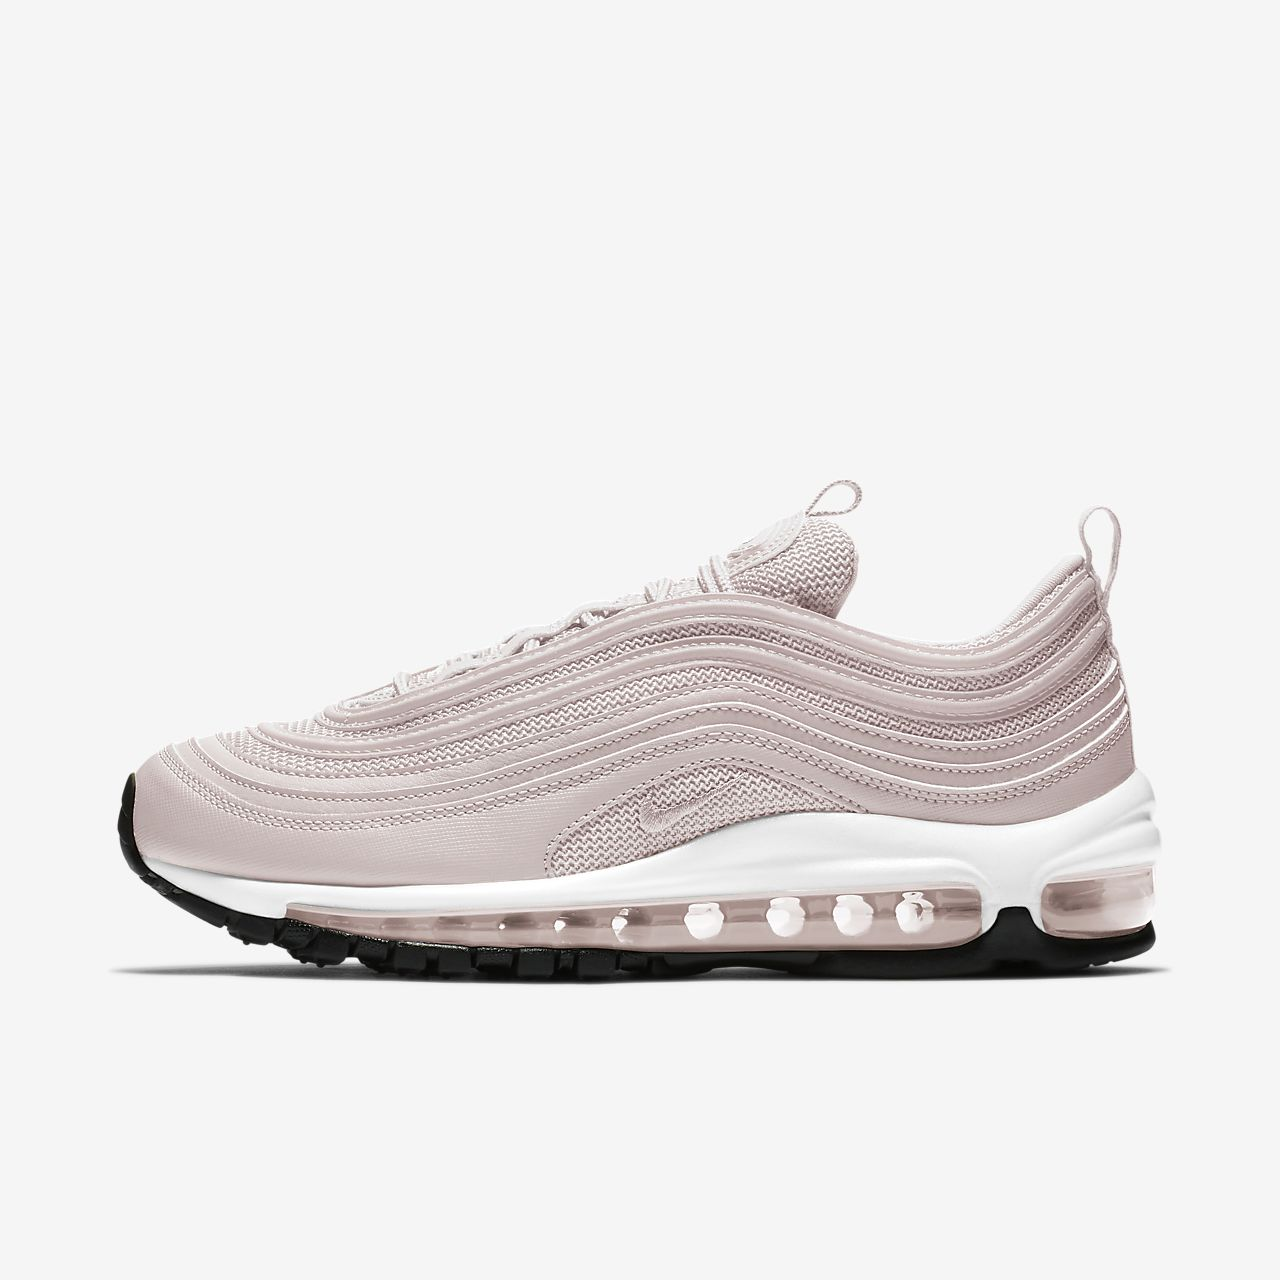 newest 9070d 915c2 Nike Air Max 97 Women's Shoe